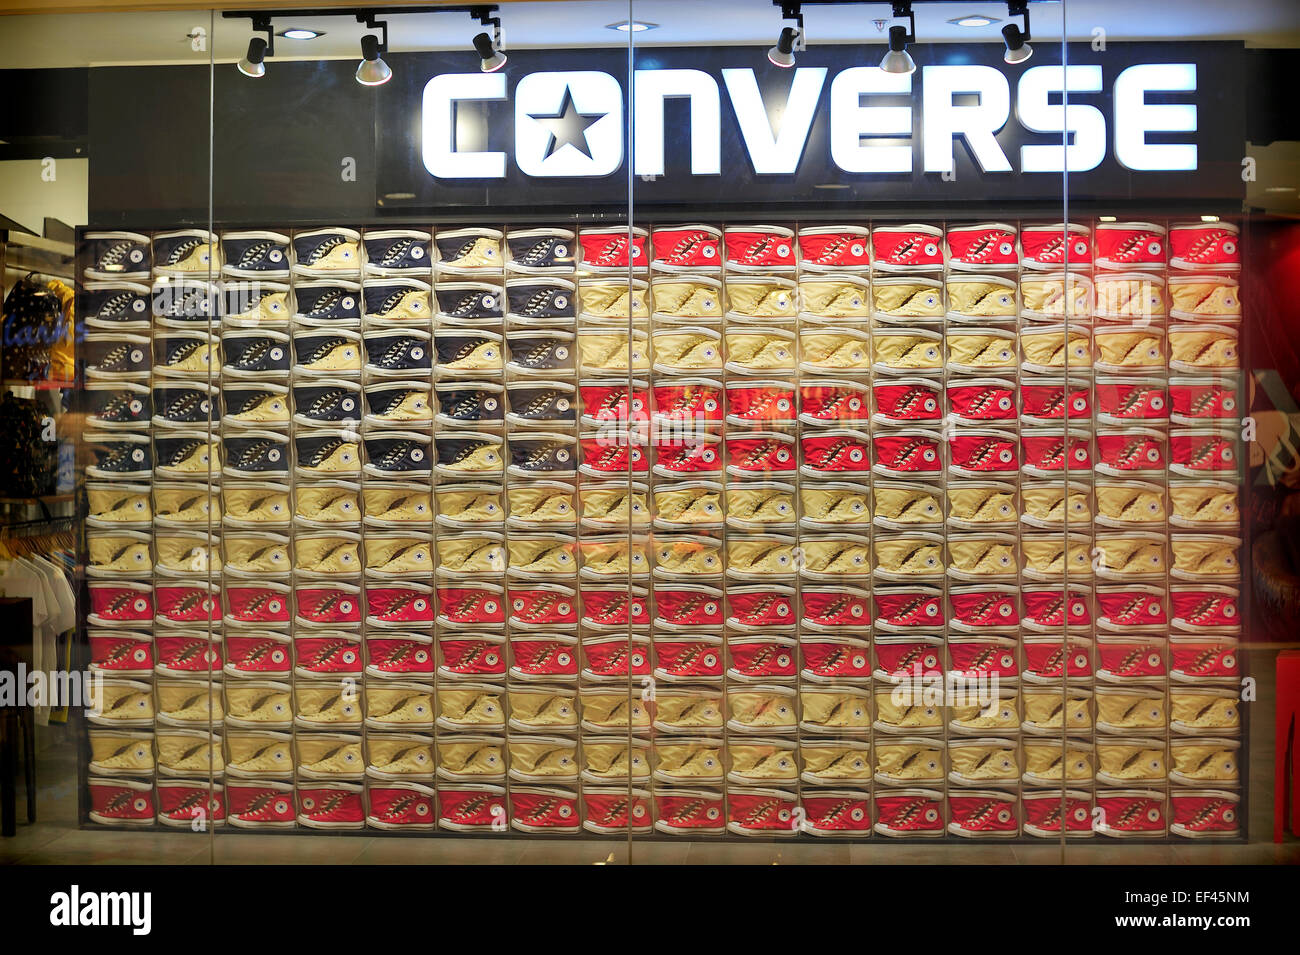 a77a91c3bd22 Display of Converse Sports Shoes Ayala Center Cebu City Philippines - Stock  Image